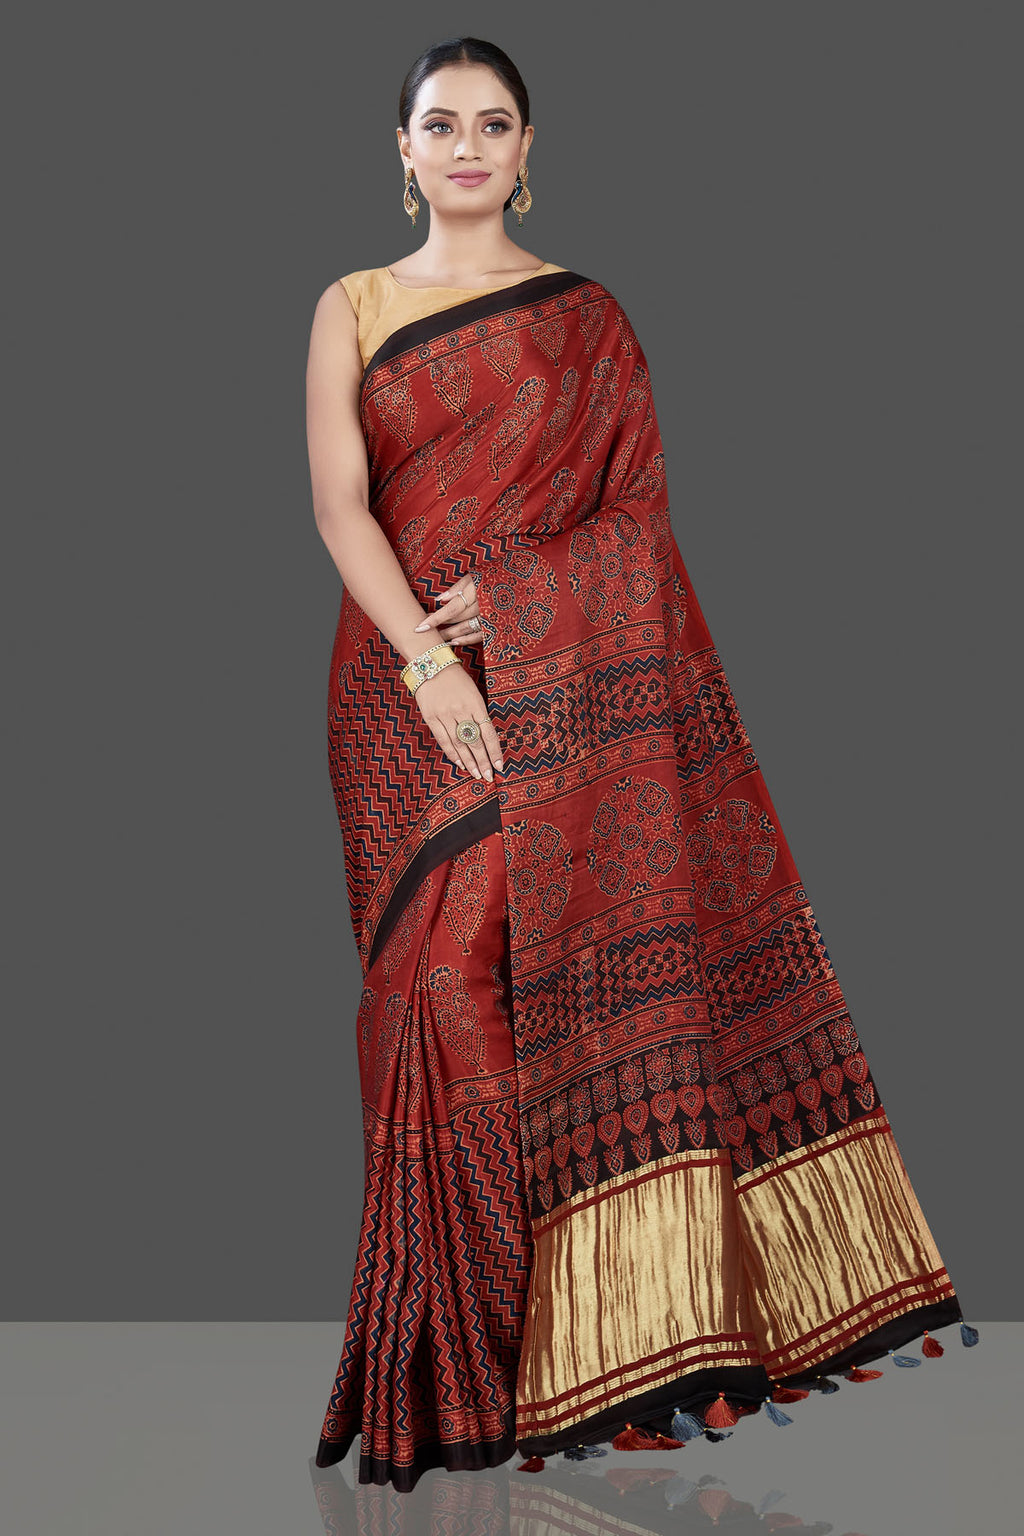 Shop beautiful red Ajrakh print saree online in USA with golden zari pallu. Be the talk of the occasion in exquisite designer sarees, pure silk sarees, tussar saris, embroidered sarees, handloom sarees from Pure Elegance Indian fashion store in USA.-full view